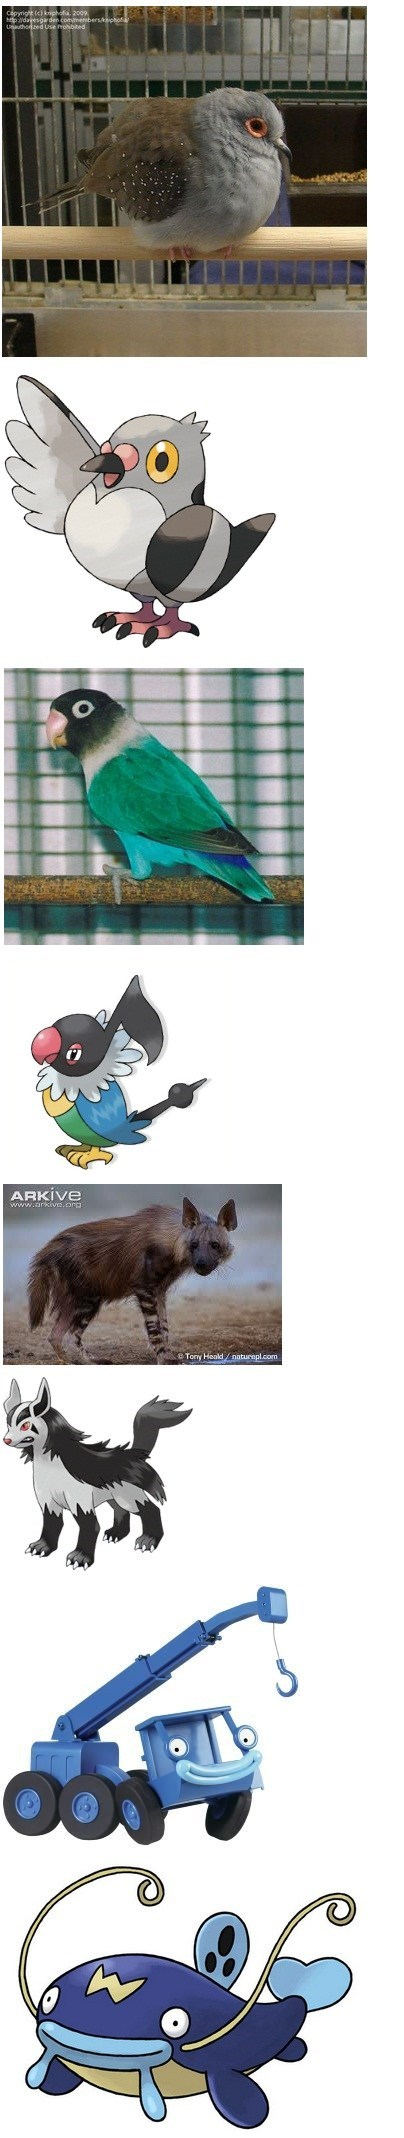 Pokémon,whiscash,IRL,animals